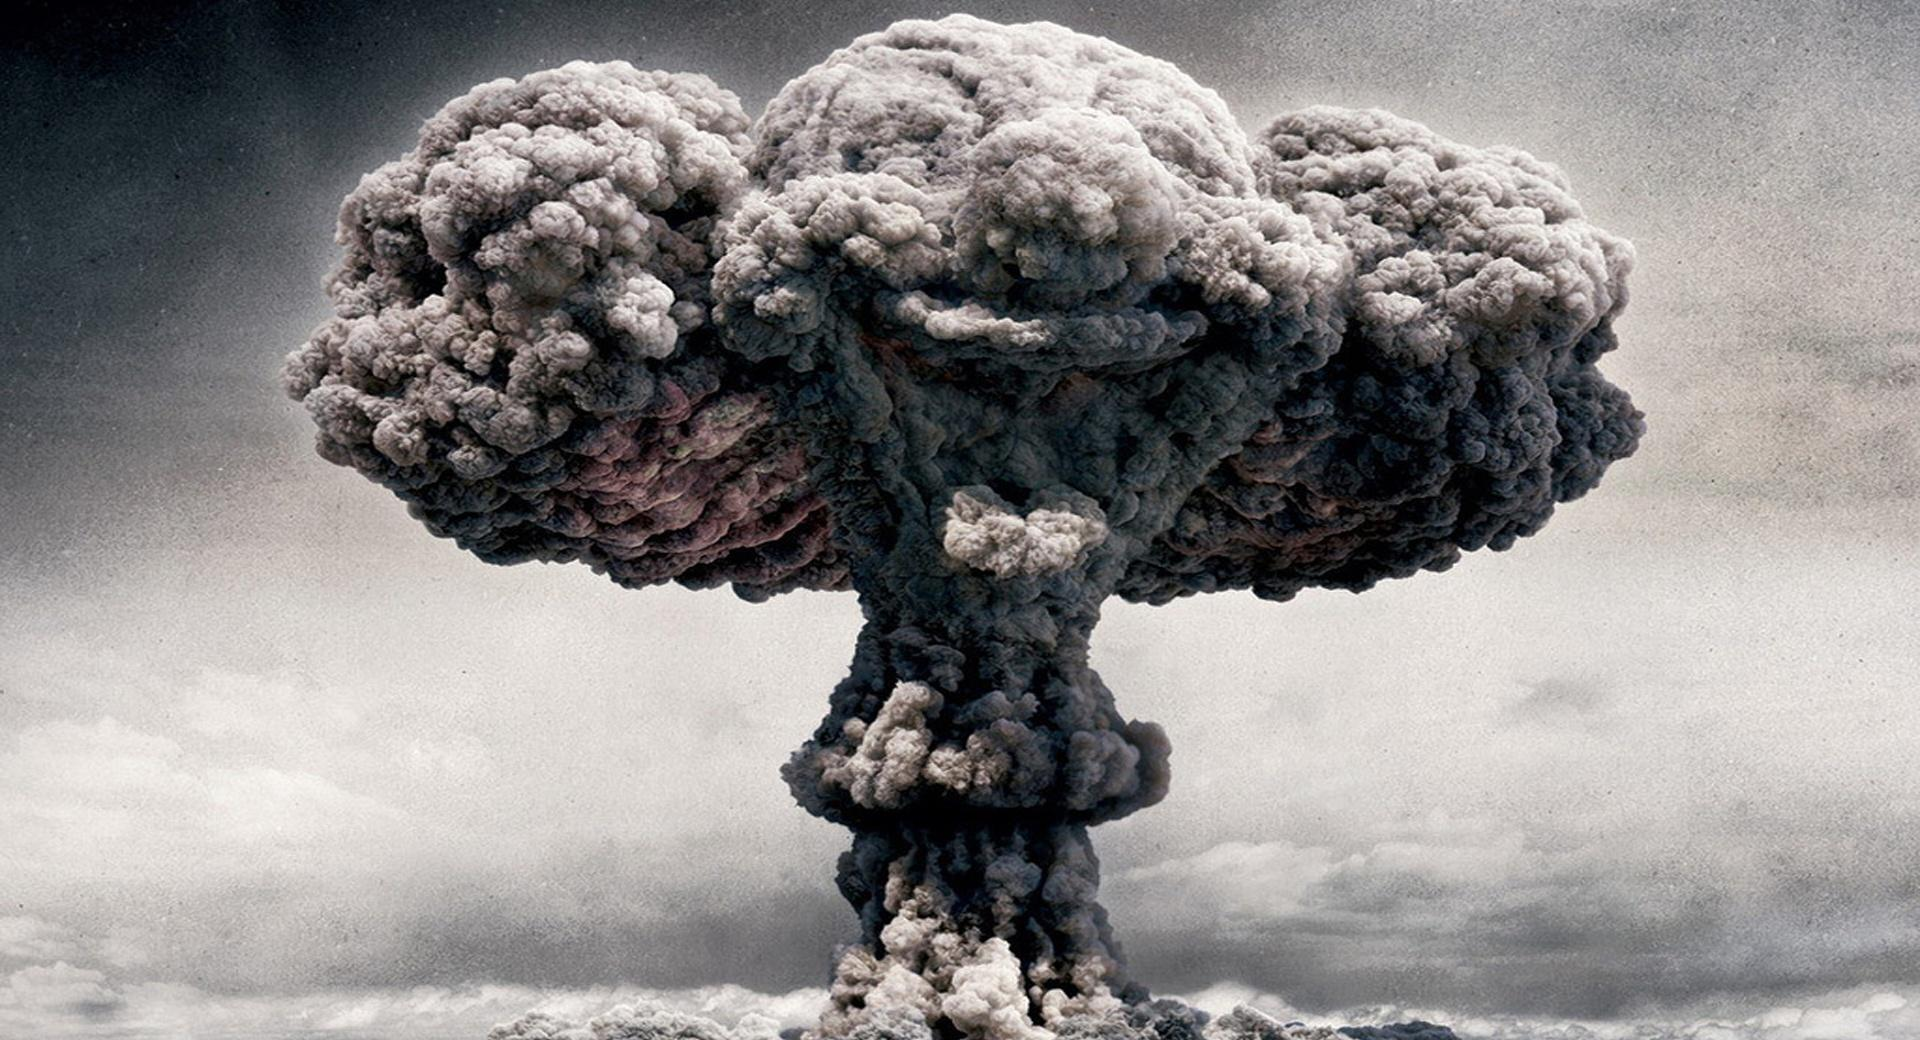 Atomic Mushroom Cloud wallpapers HD quality